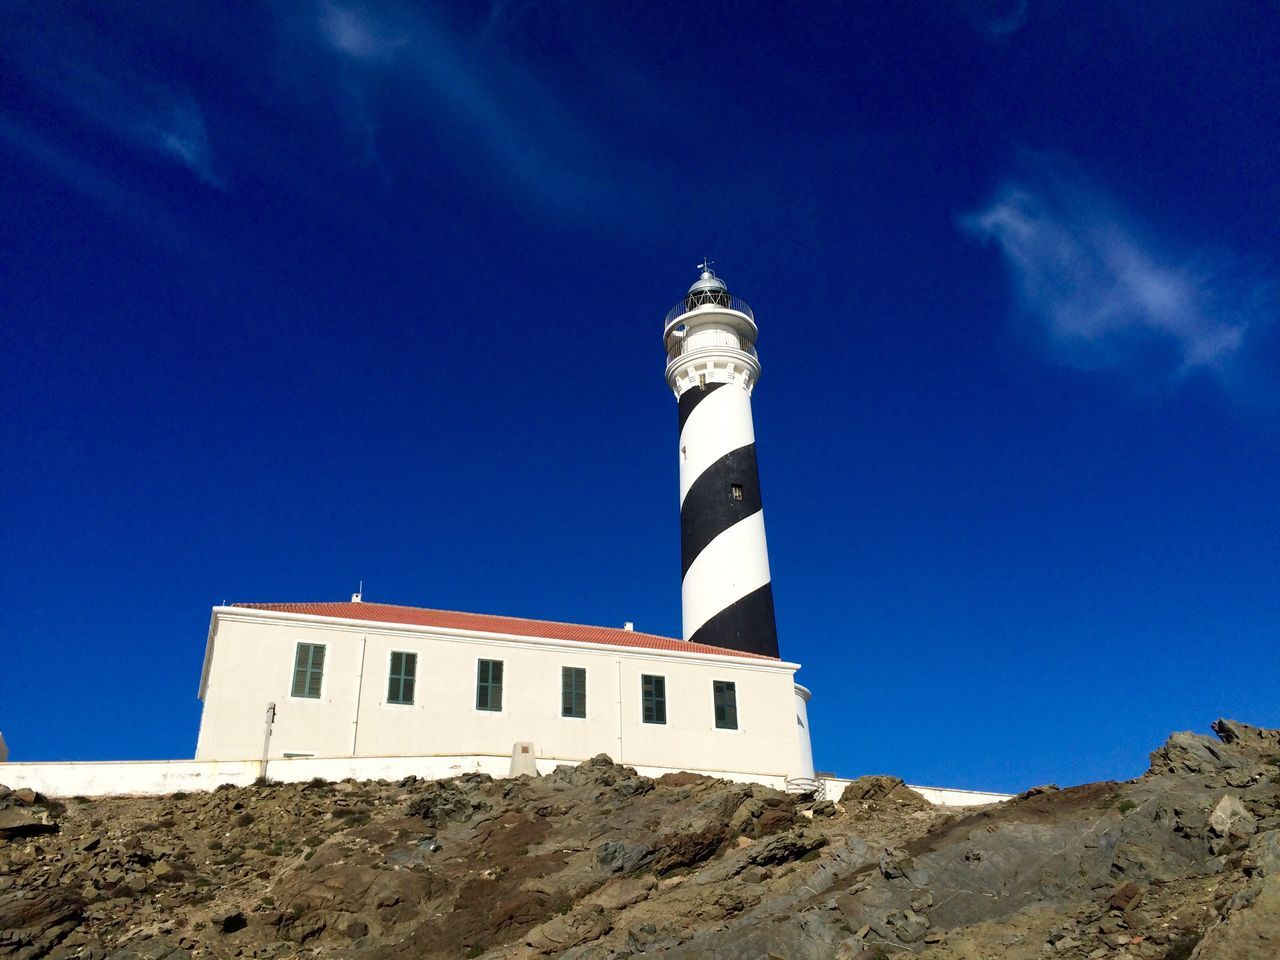 lighthouse, low angle view, architecture, blue, building exterior, built structure, day, no people, guidance, outdoors, nature, sky, clear sky, mountain